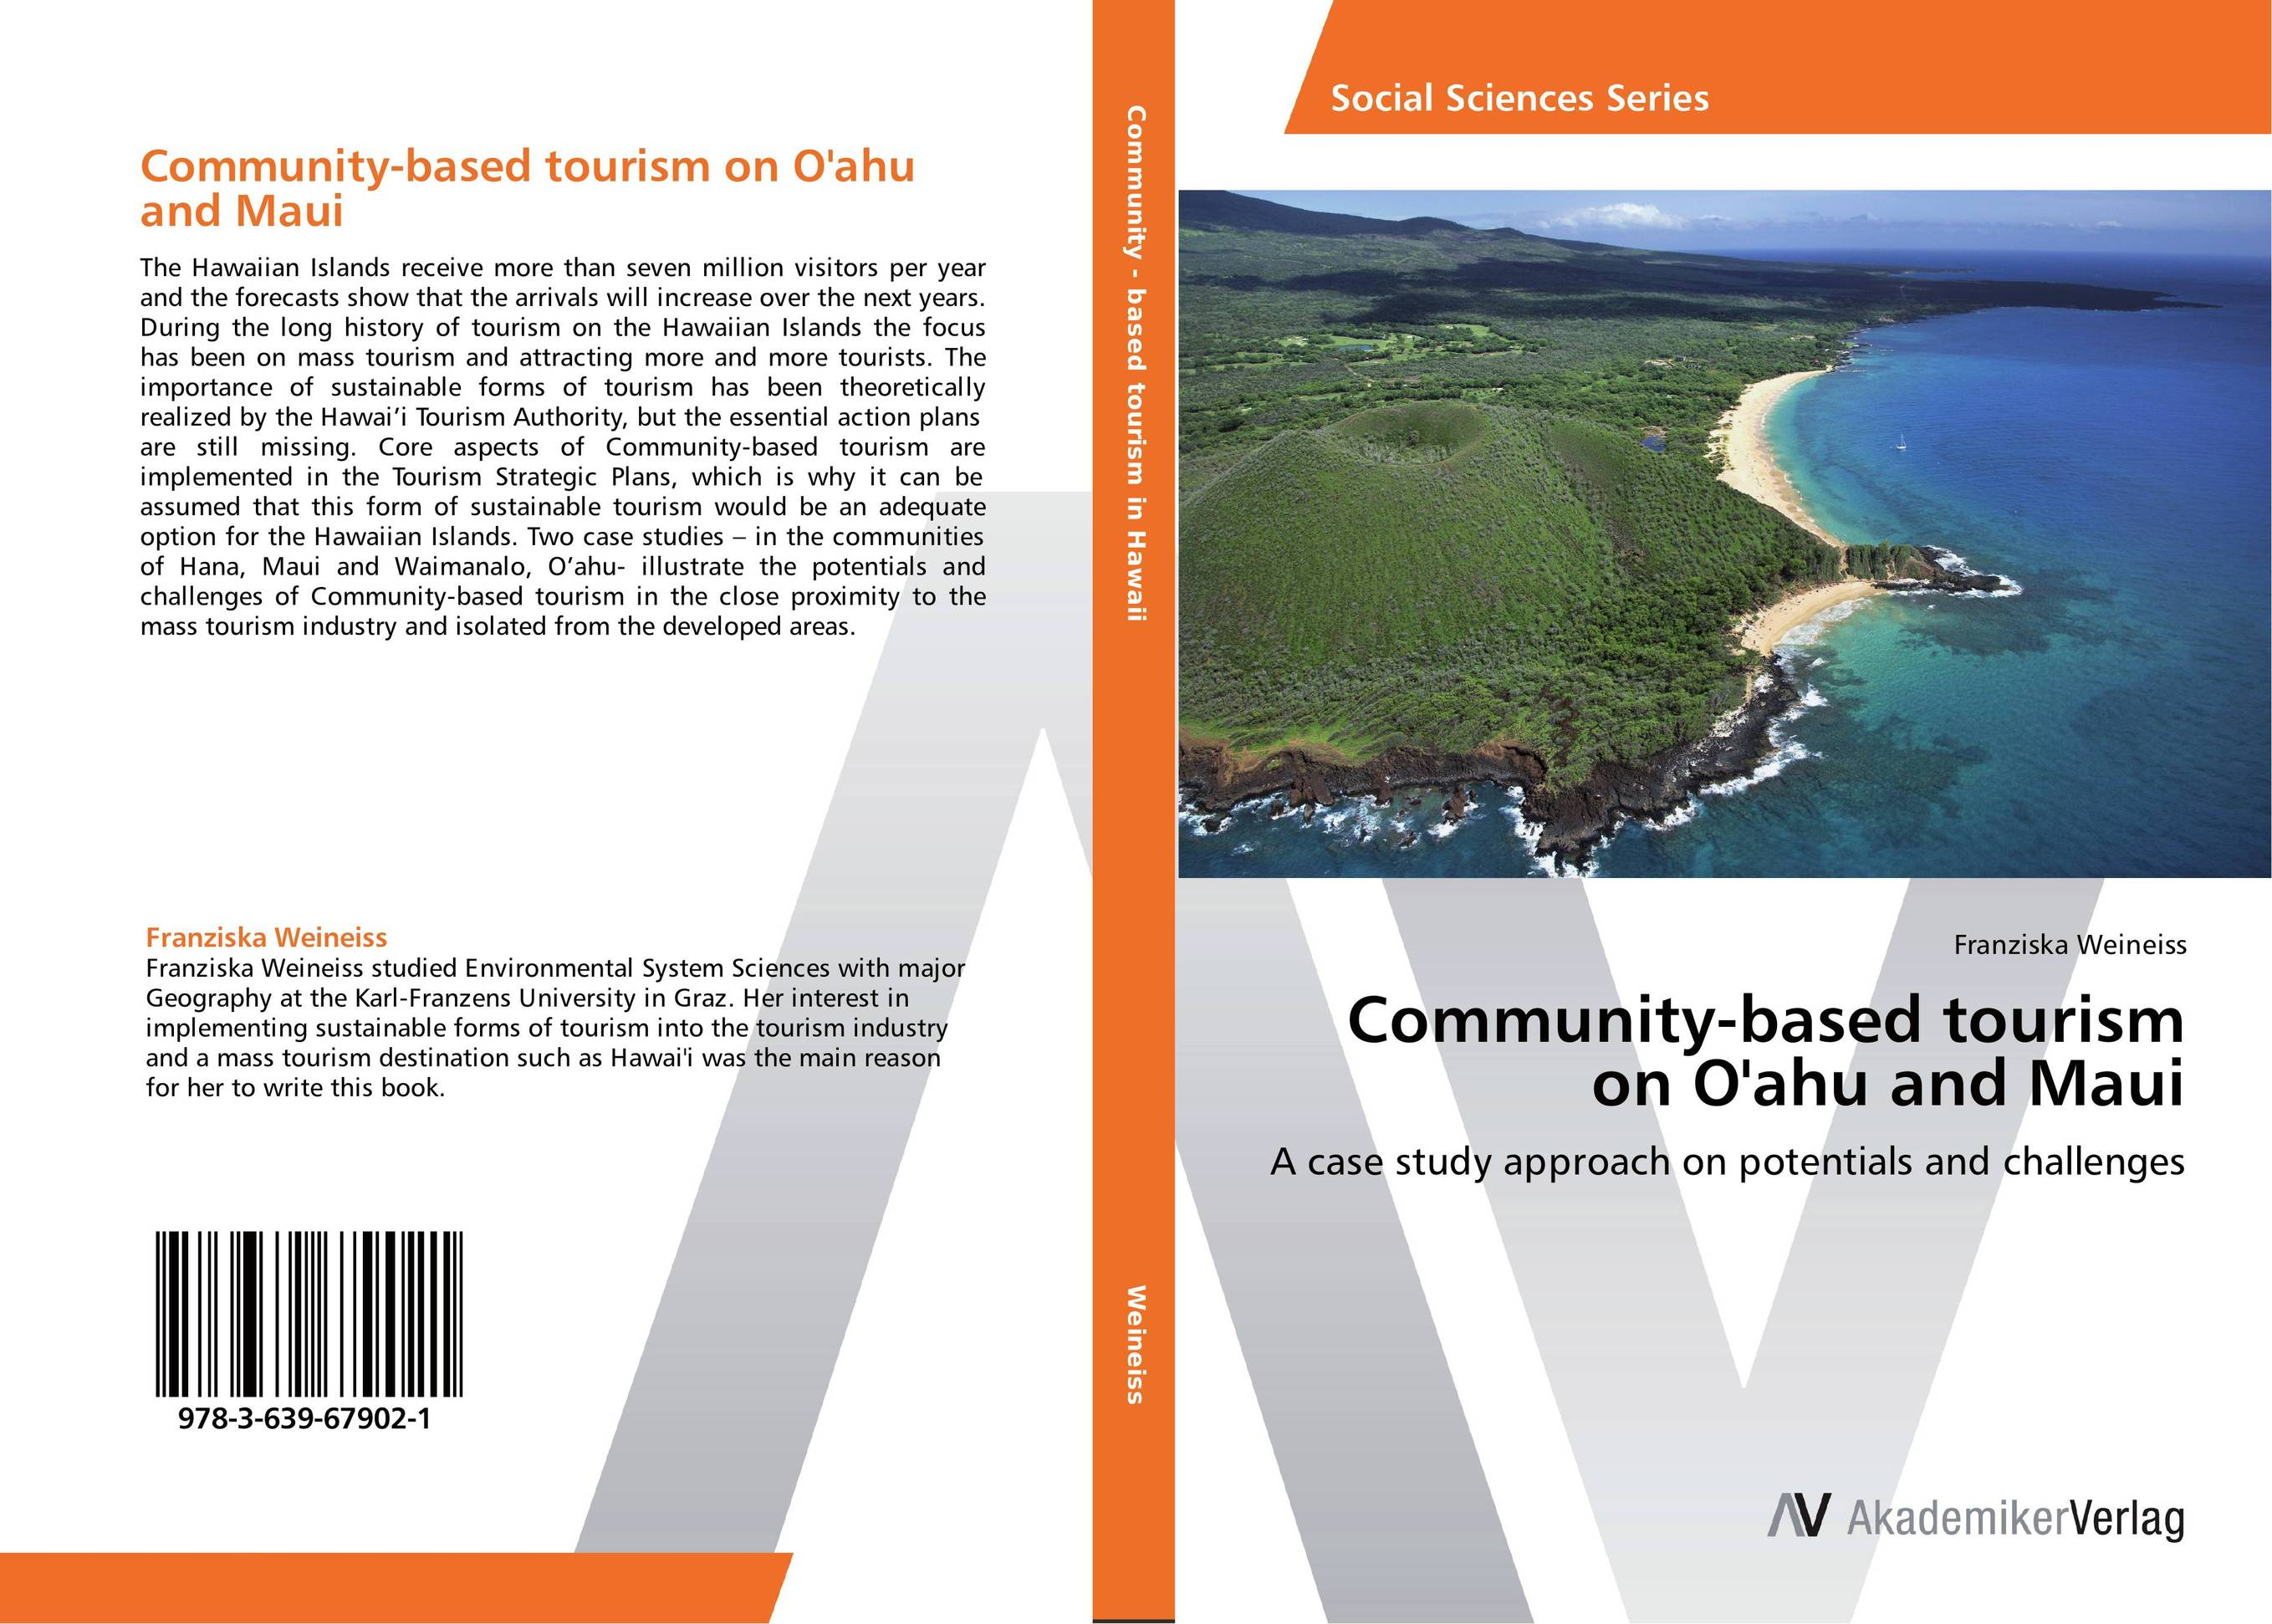 Community-based tourism on O'ahu and Maui